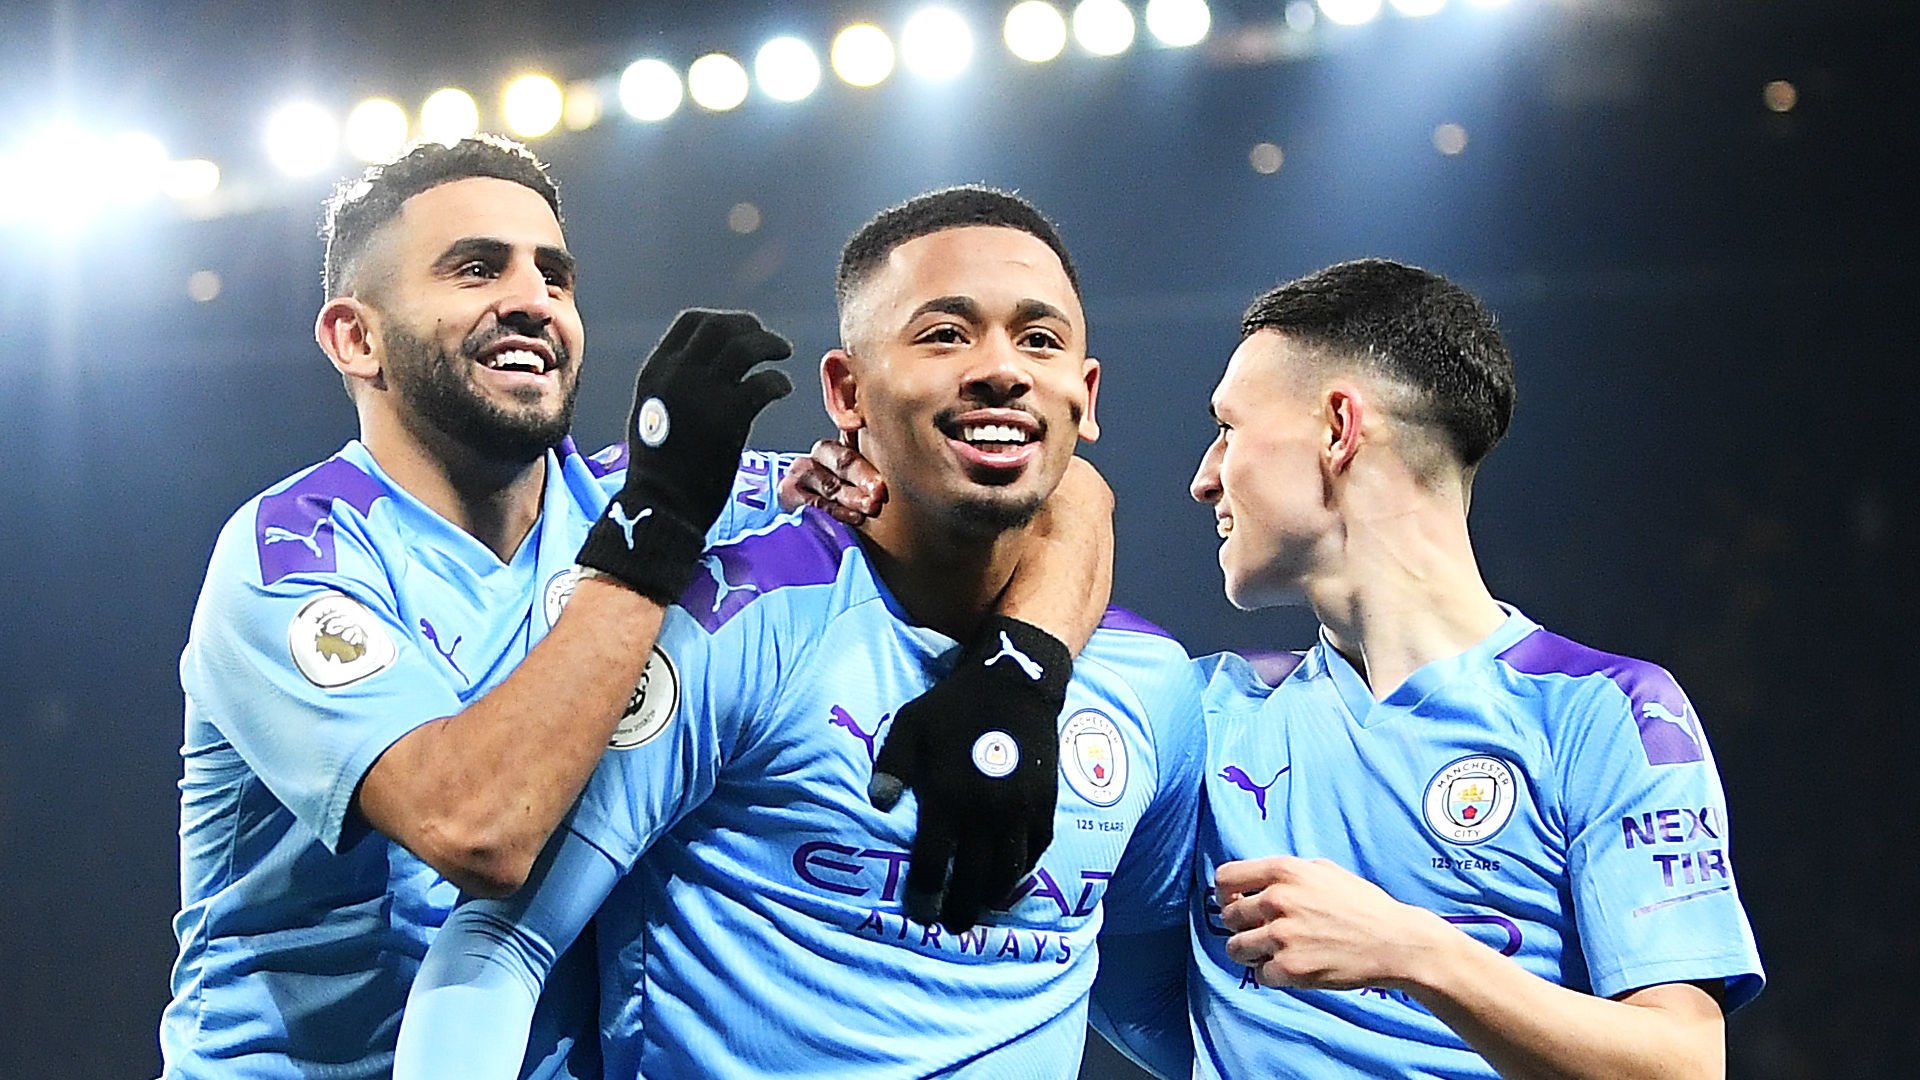 Manchester City-Everton (2-1) - Les Skyblues démarrent bien 2020